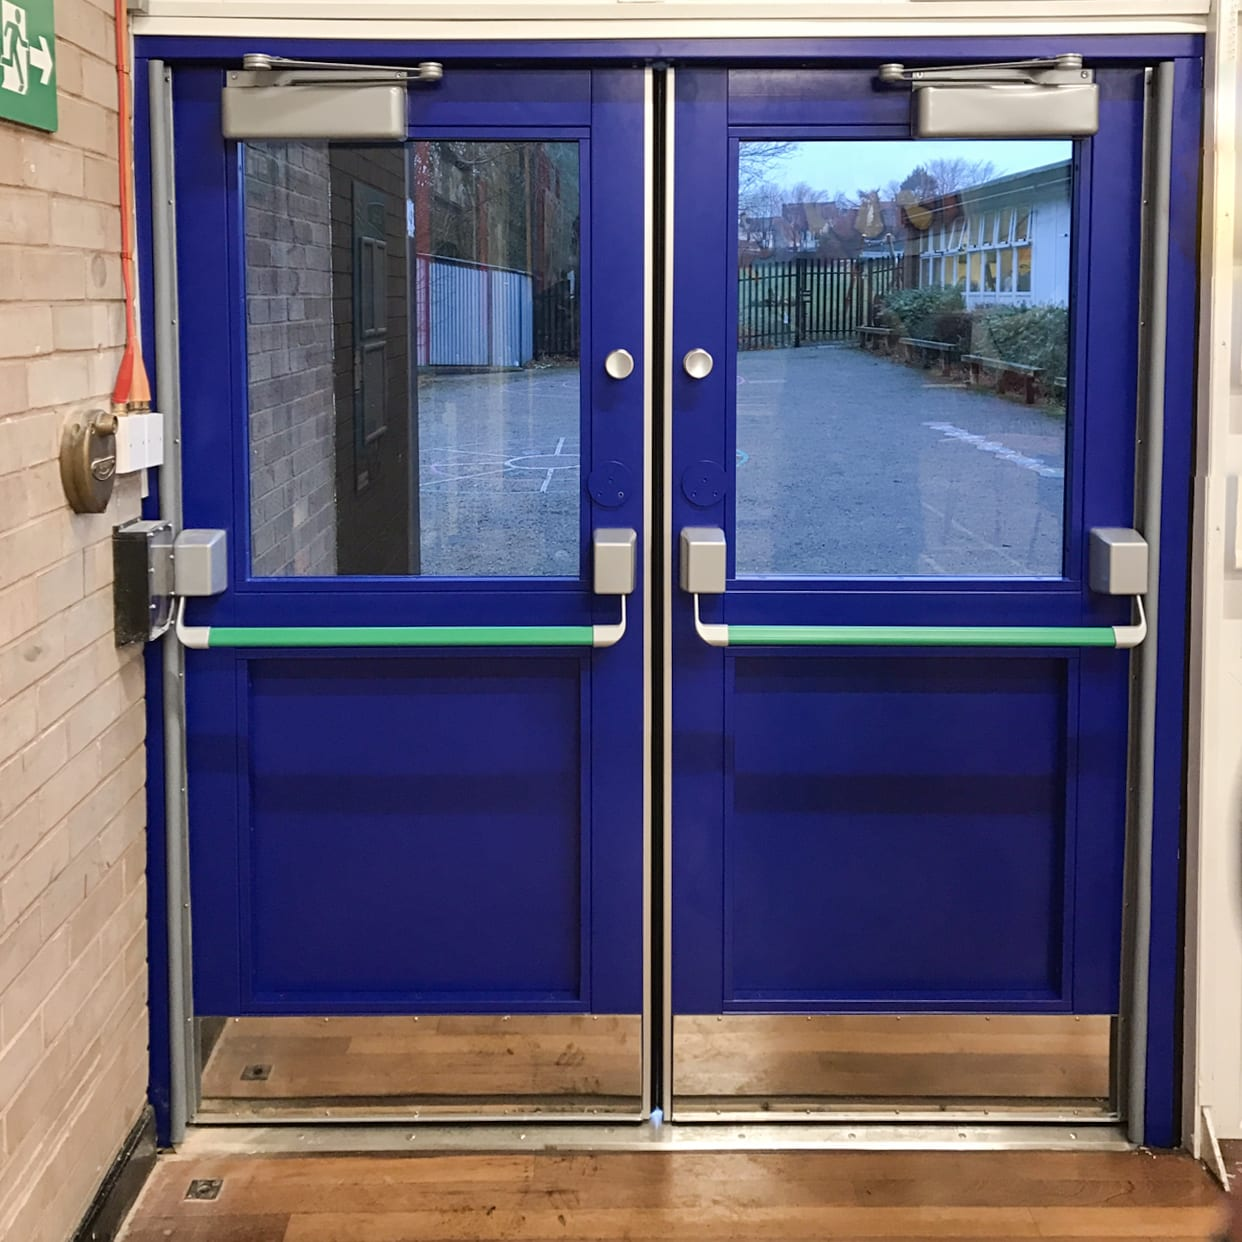 Blue Warrior Double School Security Door taken from the inside. Glass panels revealing the school playground outside. Green push to exit bars for easy visibility.